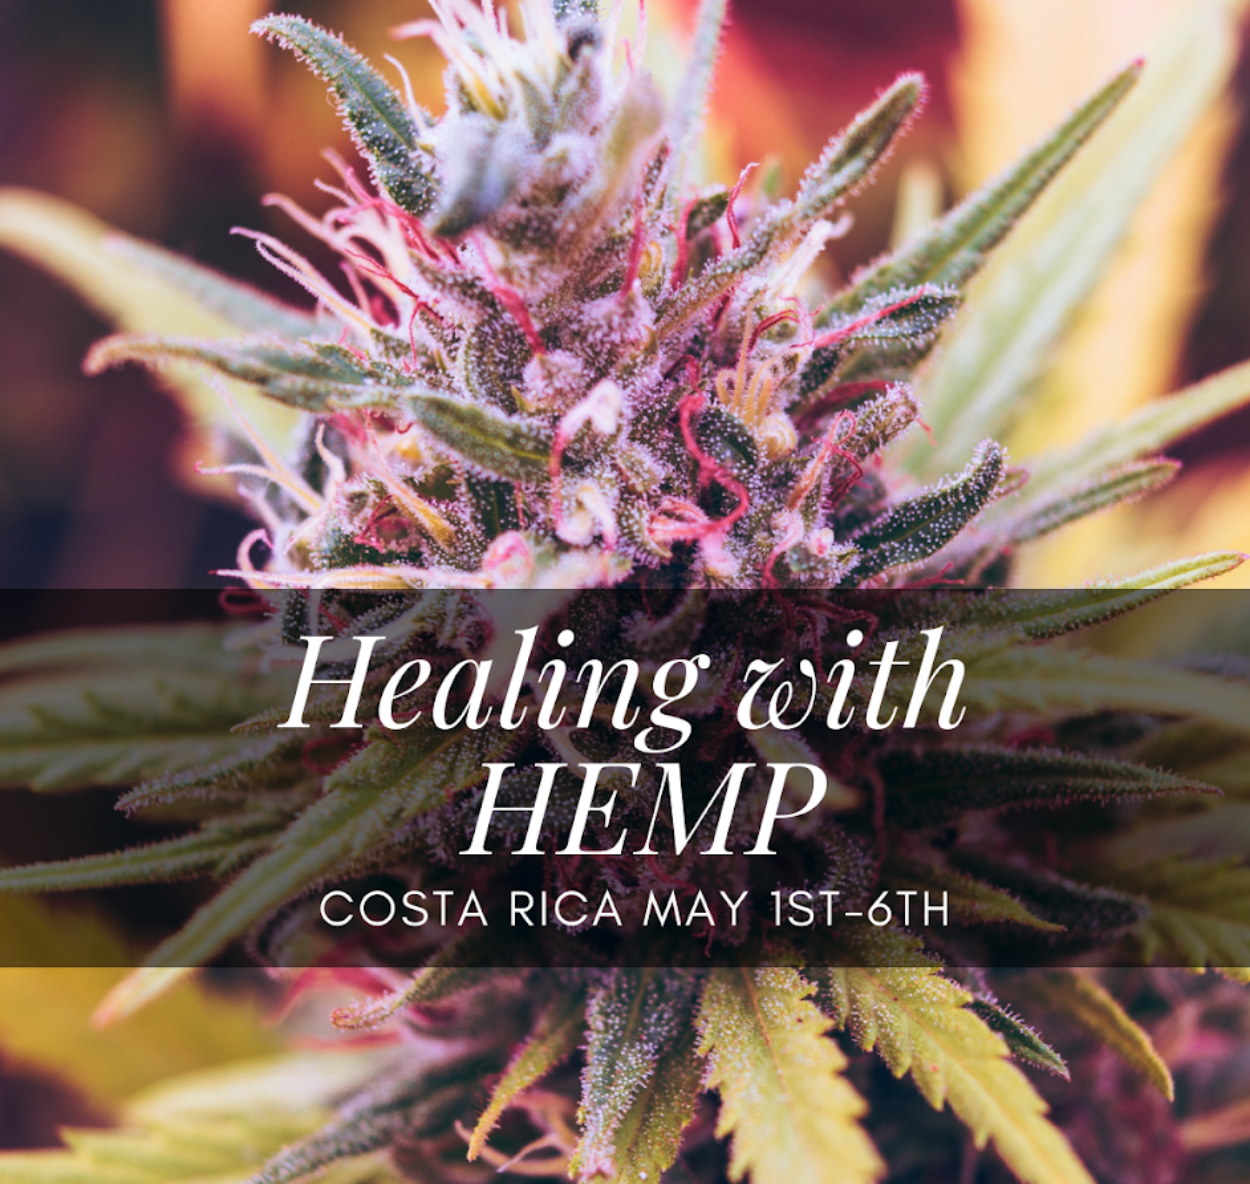 Are you feeling anxious, depressed, and stressed? - Suffer from long-term physical pain?Had a bad experience with Cannabis and still hold the echos?Want to learn more about the healing properties of this plant?Want to experience different cannabis products in a safe and secure space?